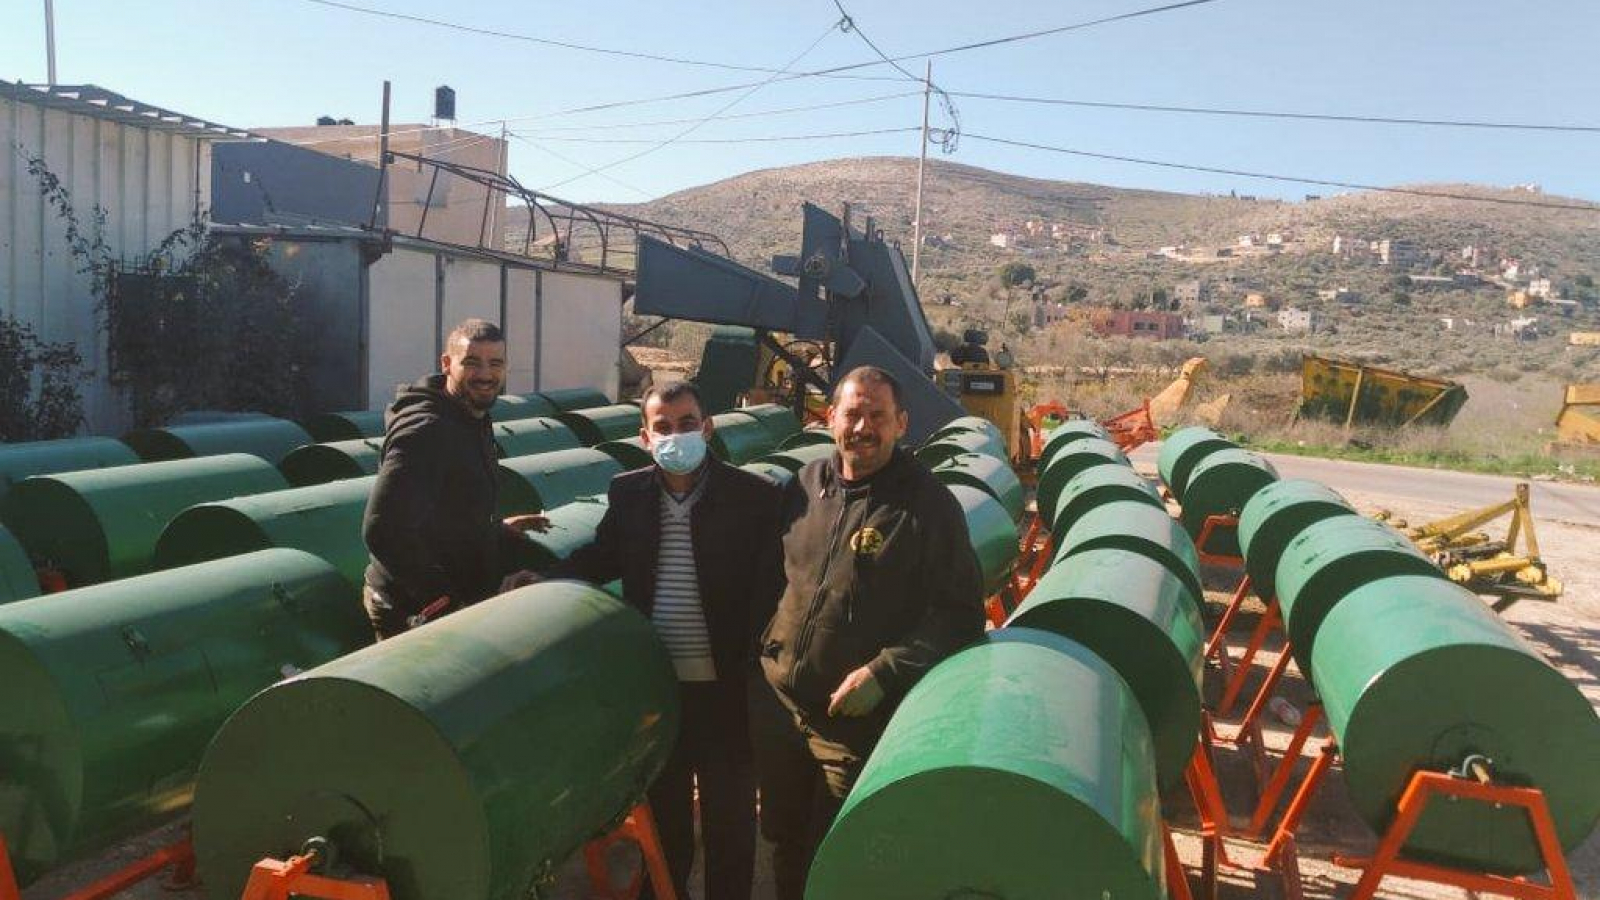 Organic waste: DECOST project to implement community composting in the municipality of Anabta, Palestine